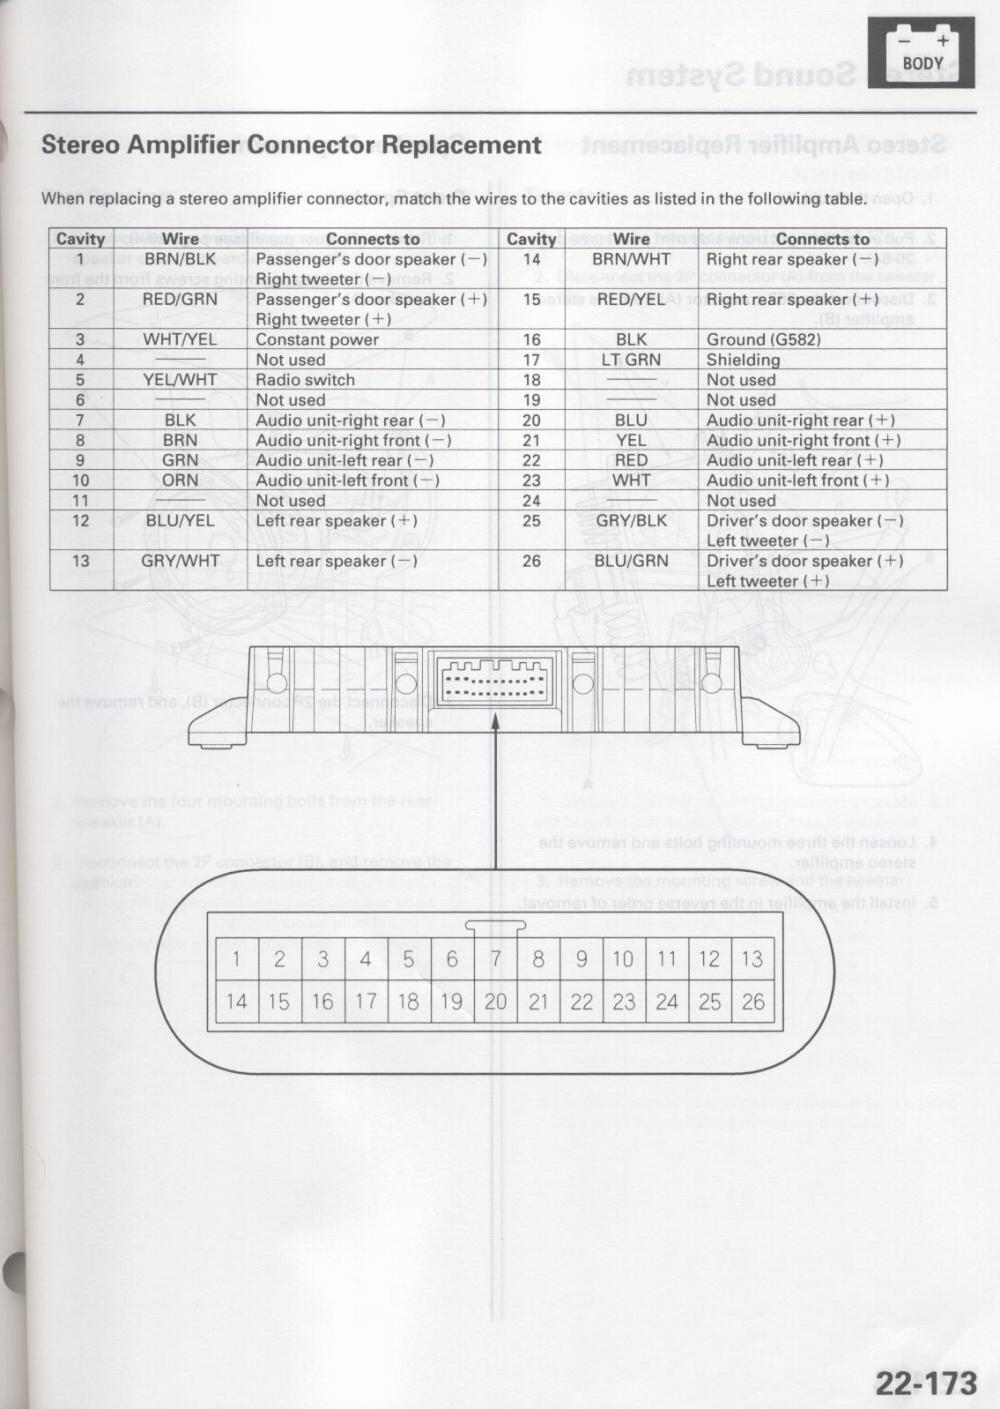 Car Radio Stereo Audio Wiring Diagram Autoradio Connector Wire Auto Speaker Installation Schematic Schema Esquema De Conexiones Anschlusskammern Konektor